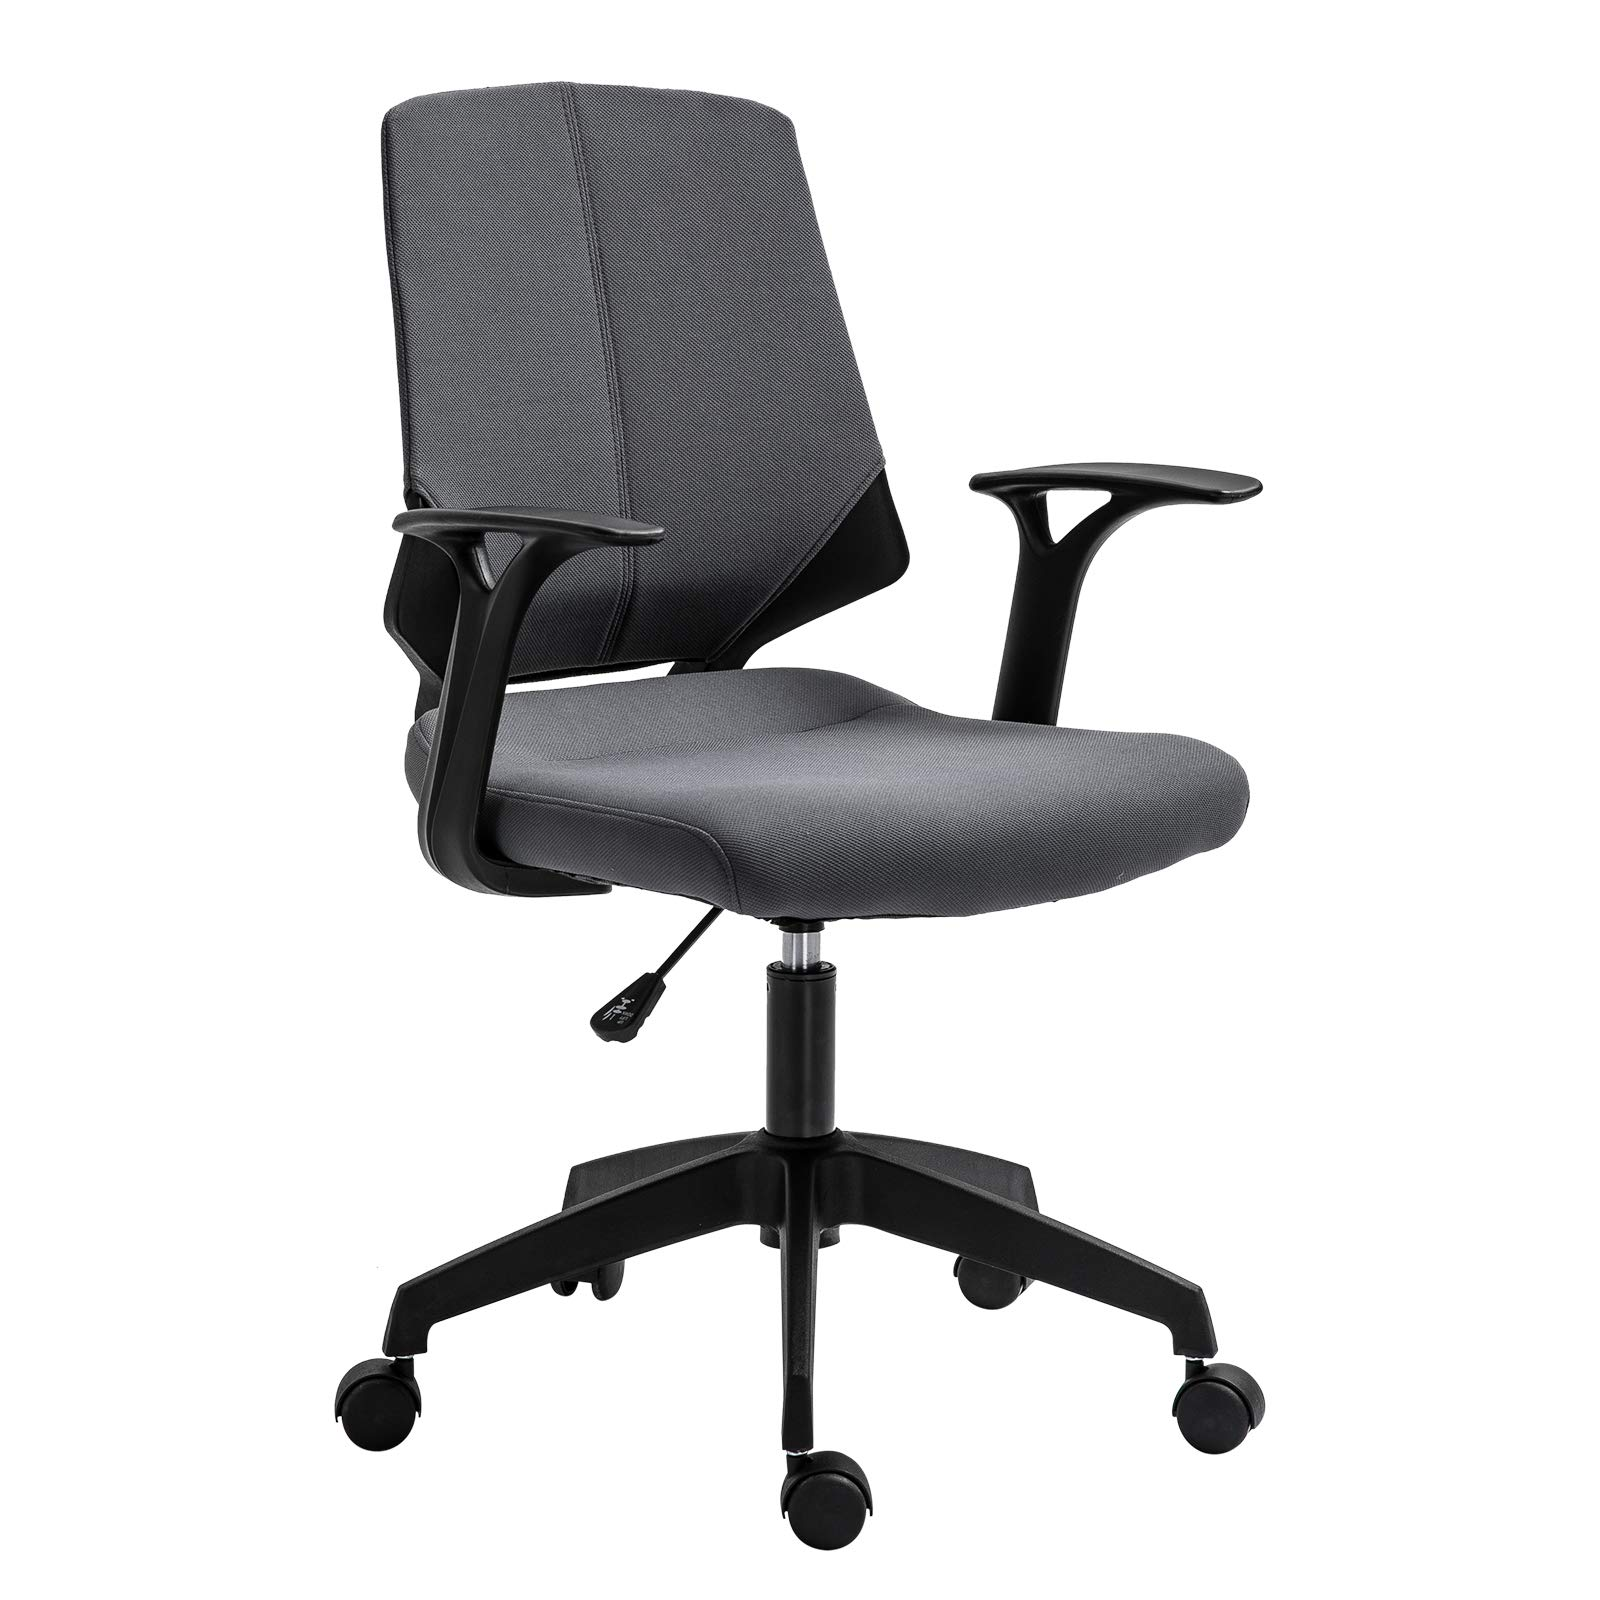 Vinsetto Ergonomic Home Office Chair 360° Swivel Height Adjustable Task Seat